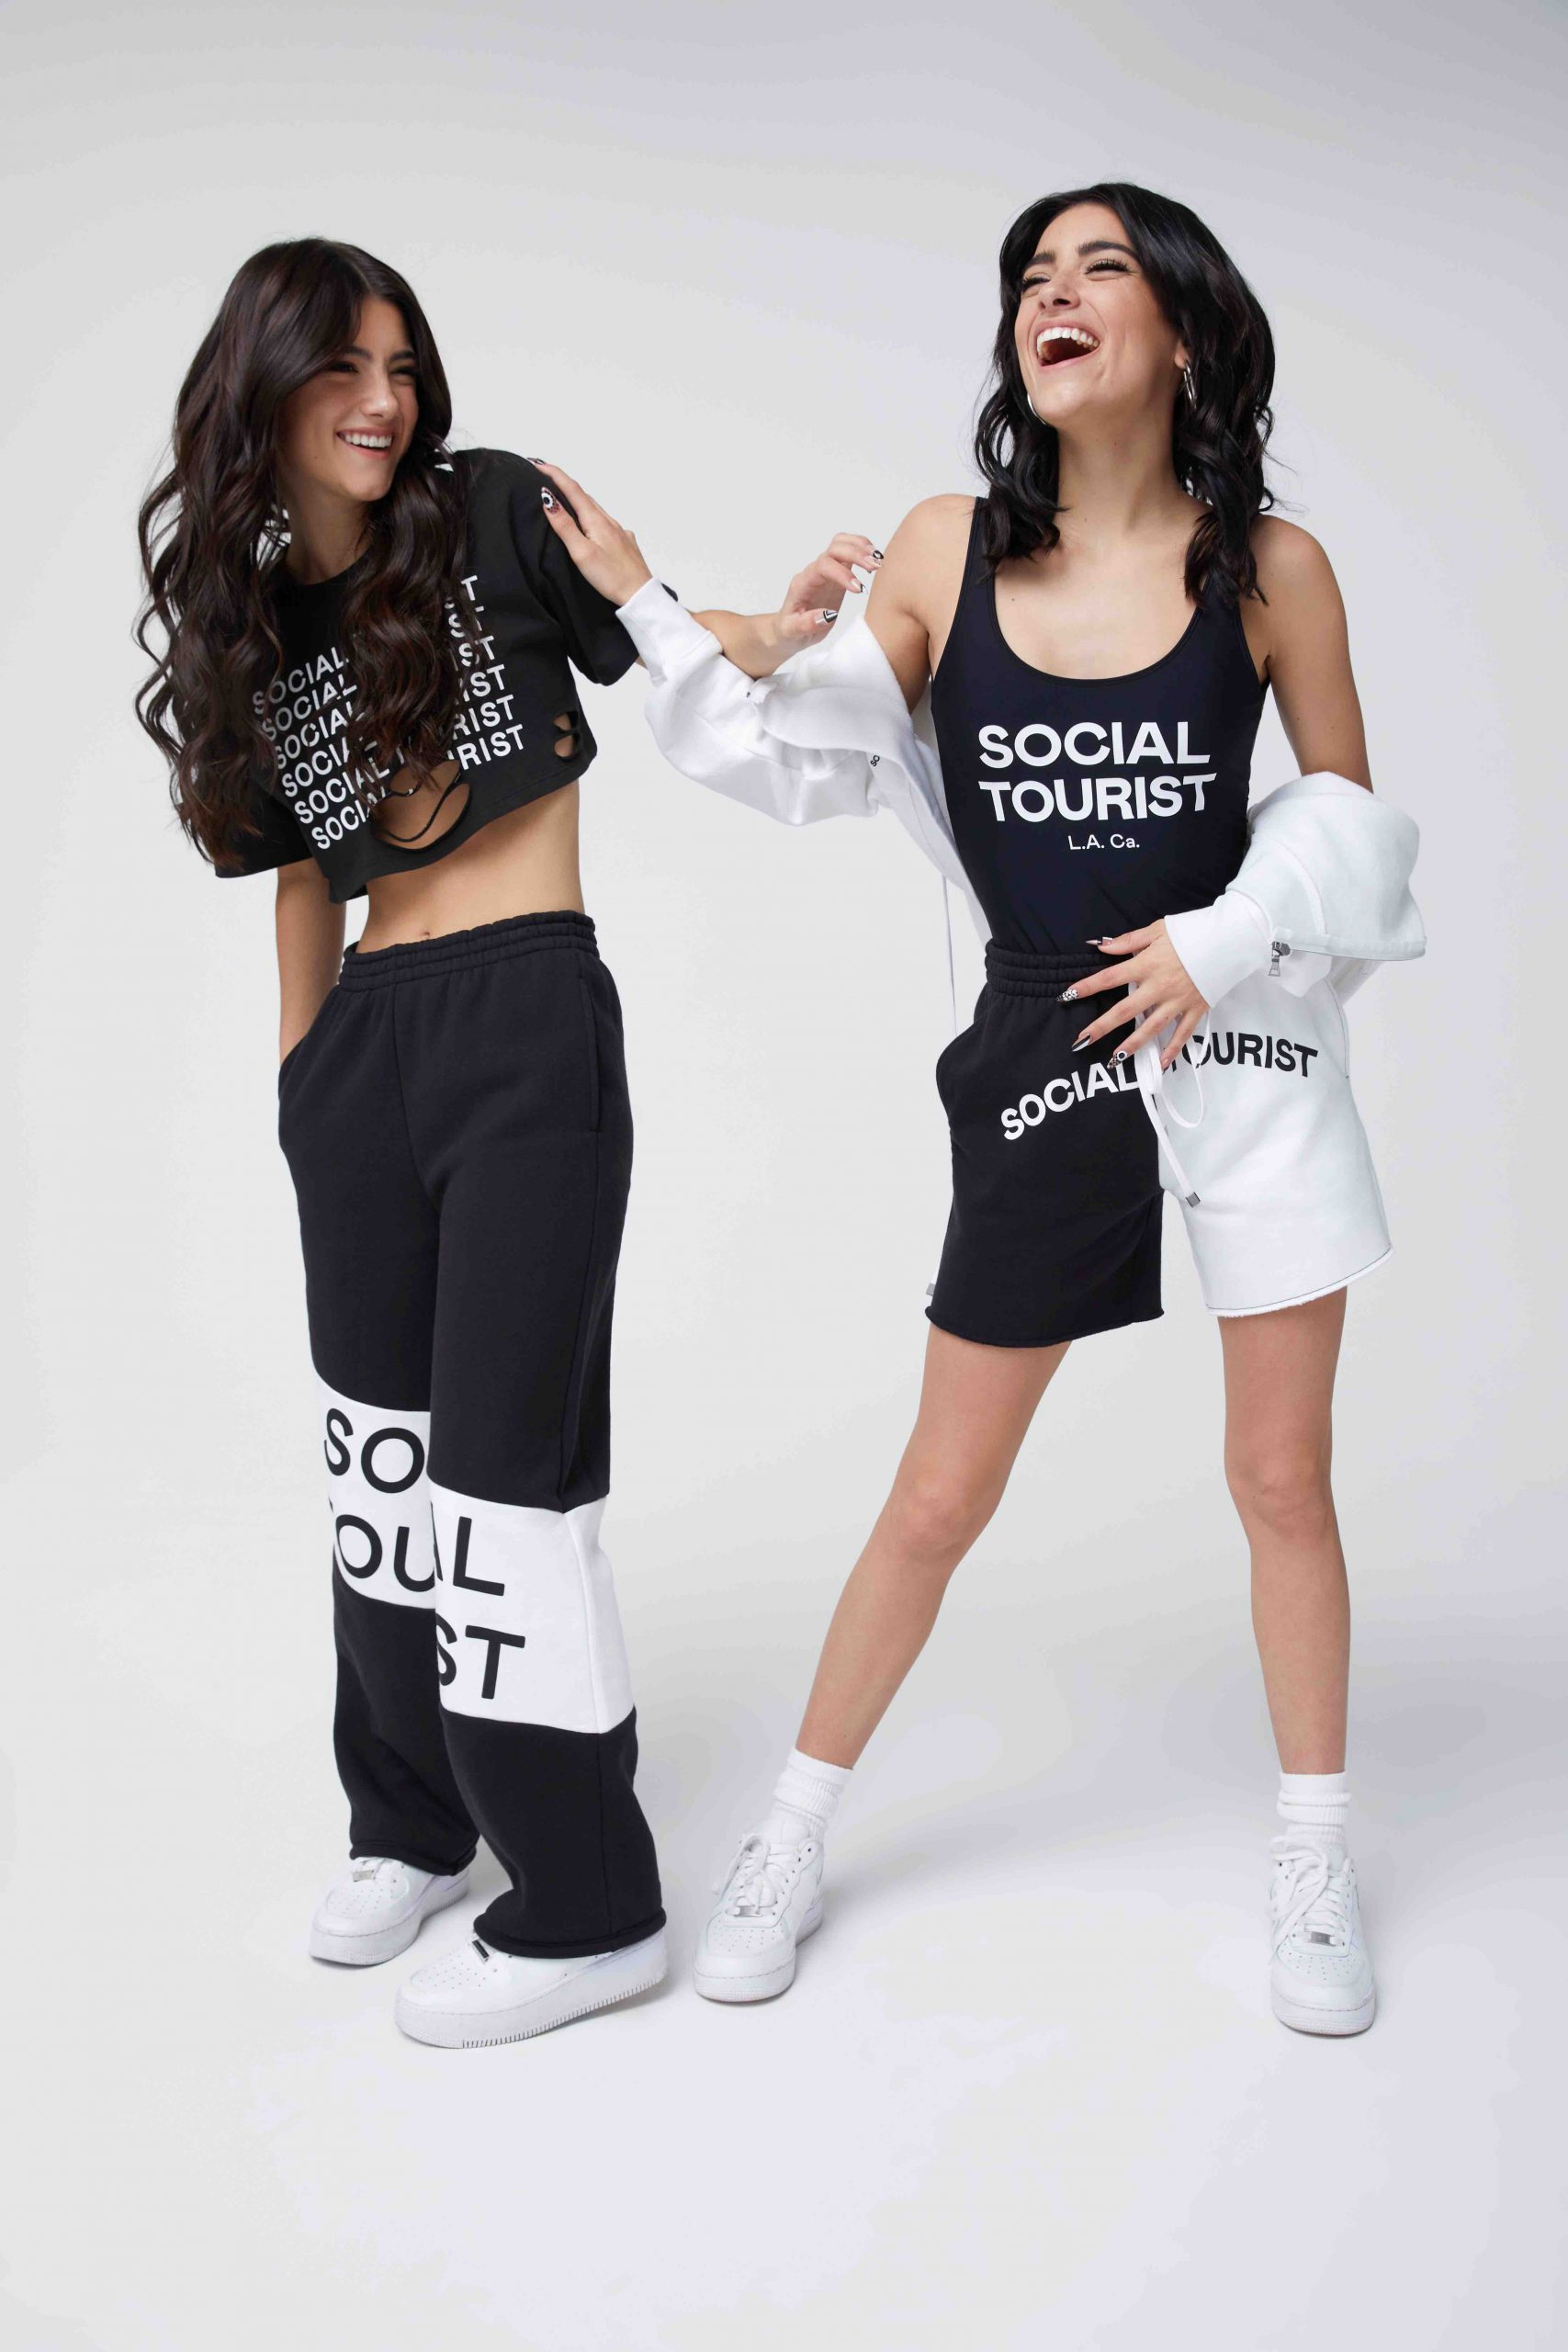 Social Tourist - Charli and Dixie - Campaign1